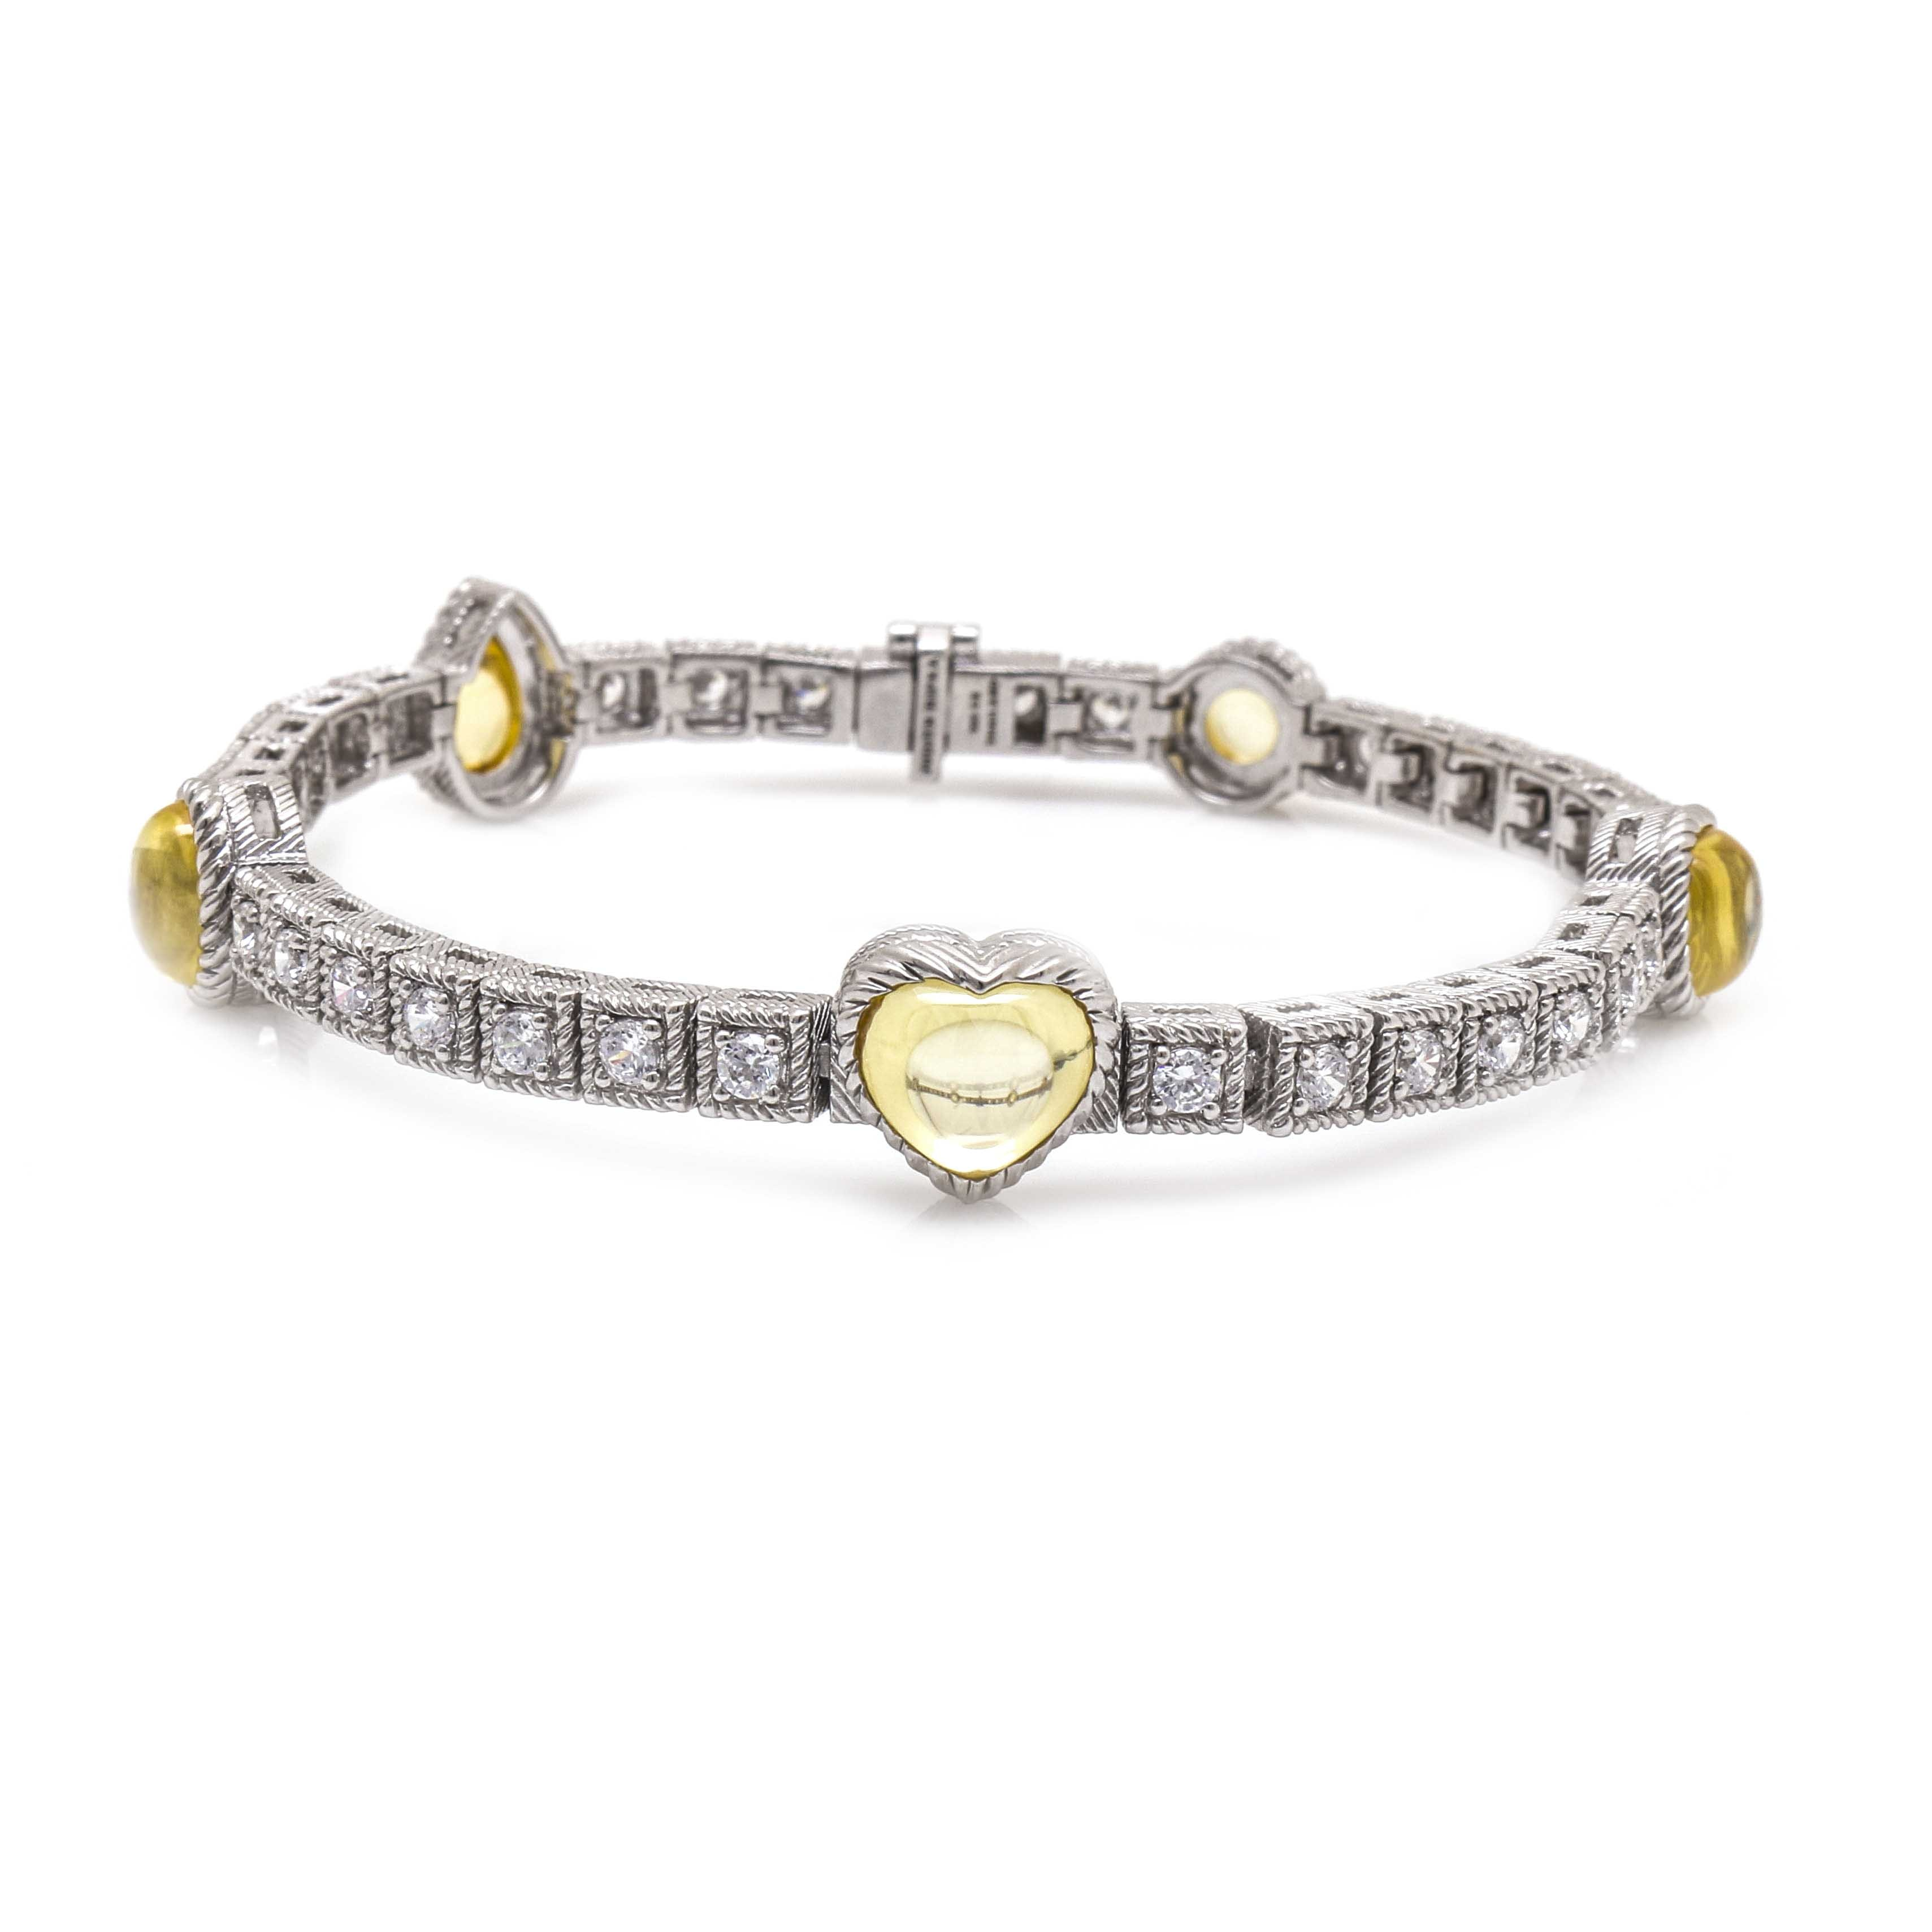 Judith Ripka Sterling Silver Yellow and White Cubic Zirconia Bracelet